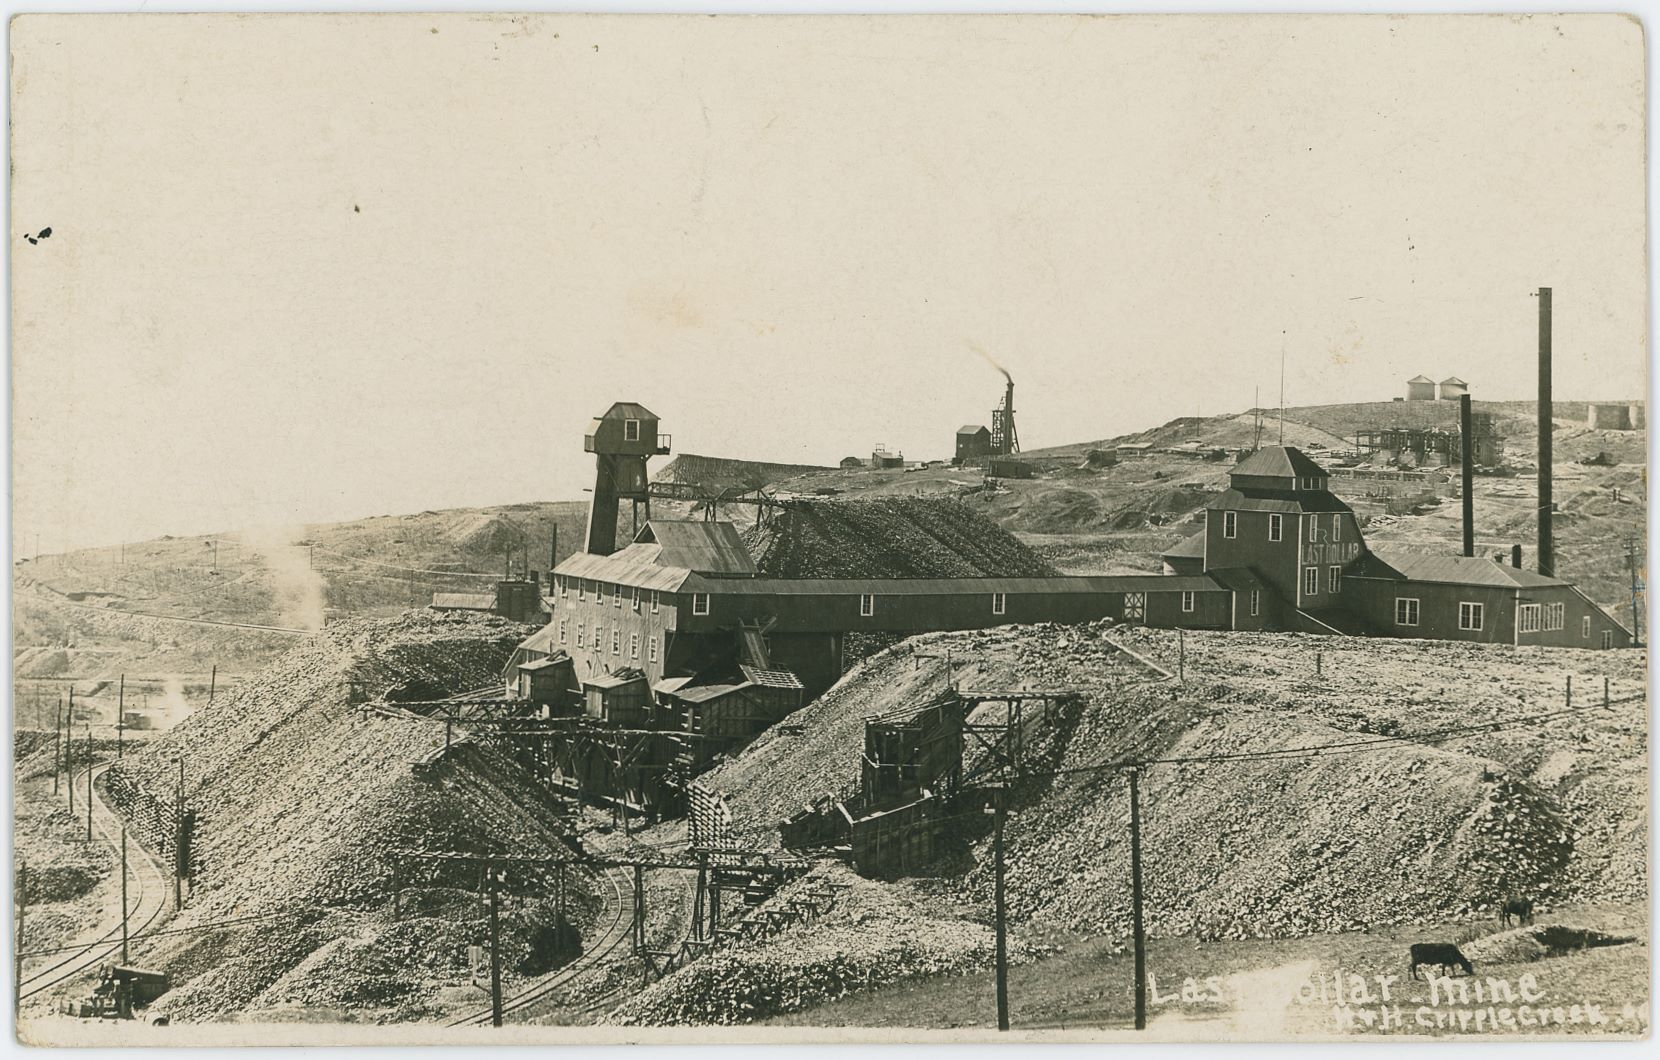 This is the second version of this card I've seen, different crop where there is a little more seen at the bottom and on the left-hand side, in terms of a millimeter or three. Marked as H & H, Cripple Creek, 09 – making this a view by either Hileman or Hill as they worked together at this time. I've also seen a version of this view where the left upper side has some hill visible, but both my cards have that missing in the faded distance.    I think the background right is showing part of what was to become Portland Mill on top of Battle Mountain, while the head frame and high tower like structure in background against the sky just right of the center left/right is from what I'm able to gather, the Portland No. 2 Shaft & headframe, as it looks very much like some other views I have of it. I felt it was too visible from this angle, but I've been unsuccessful to find any other mine in that area to fit, so it must be the Portland No. 2 shaft.    The railroad track in lower left is the Short Line/High Line roadbed going towards town of Independence and the route down passed Goldfield and into Victor, while the railroad tracks seen nearly buried in the dumps at the Last Dollar mine is the side-spur of the Golden Circle 3-foot track going towards the Vindicator Mines and for a short while the Black Sampler at Victor Pass.